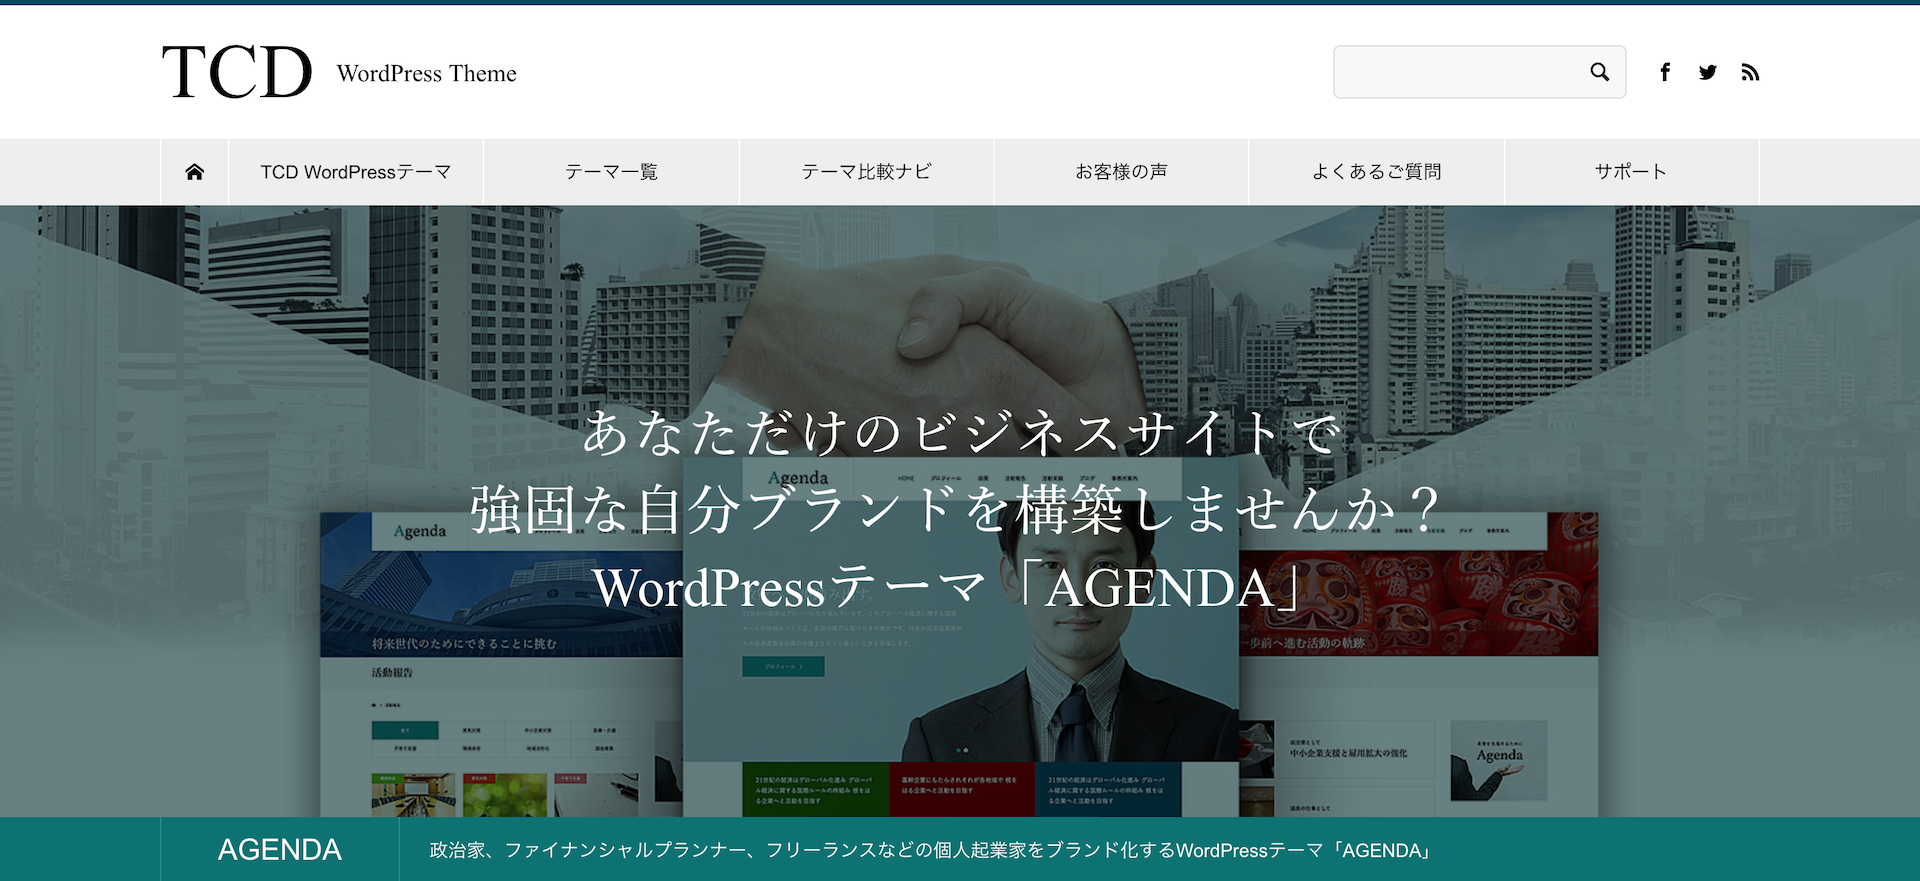 TCD WordPress テーマ